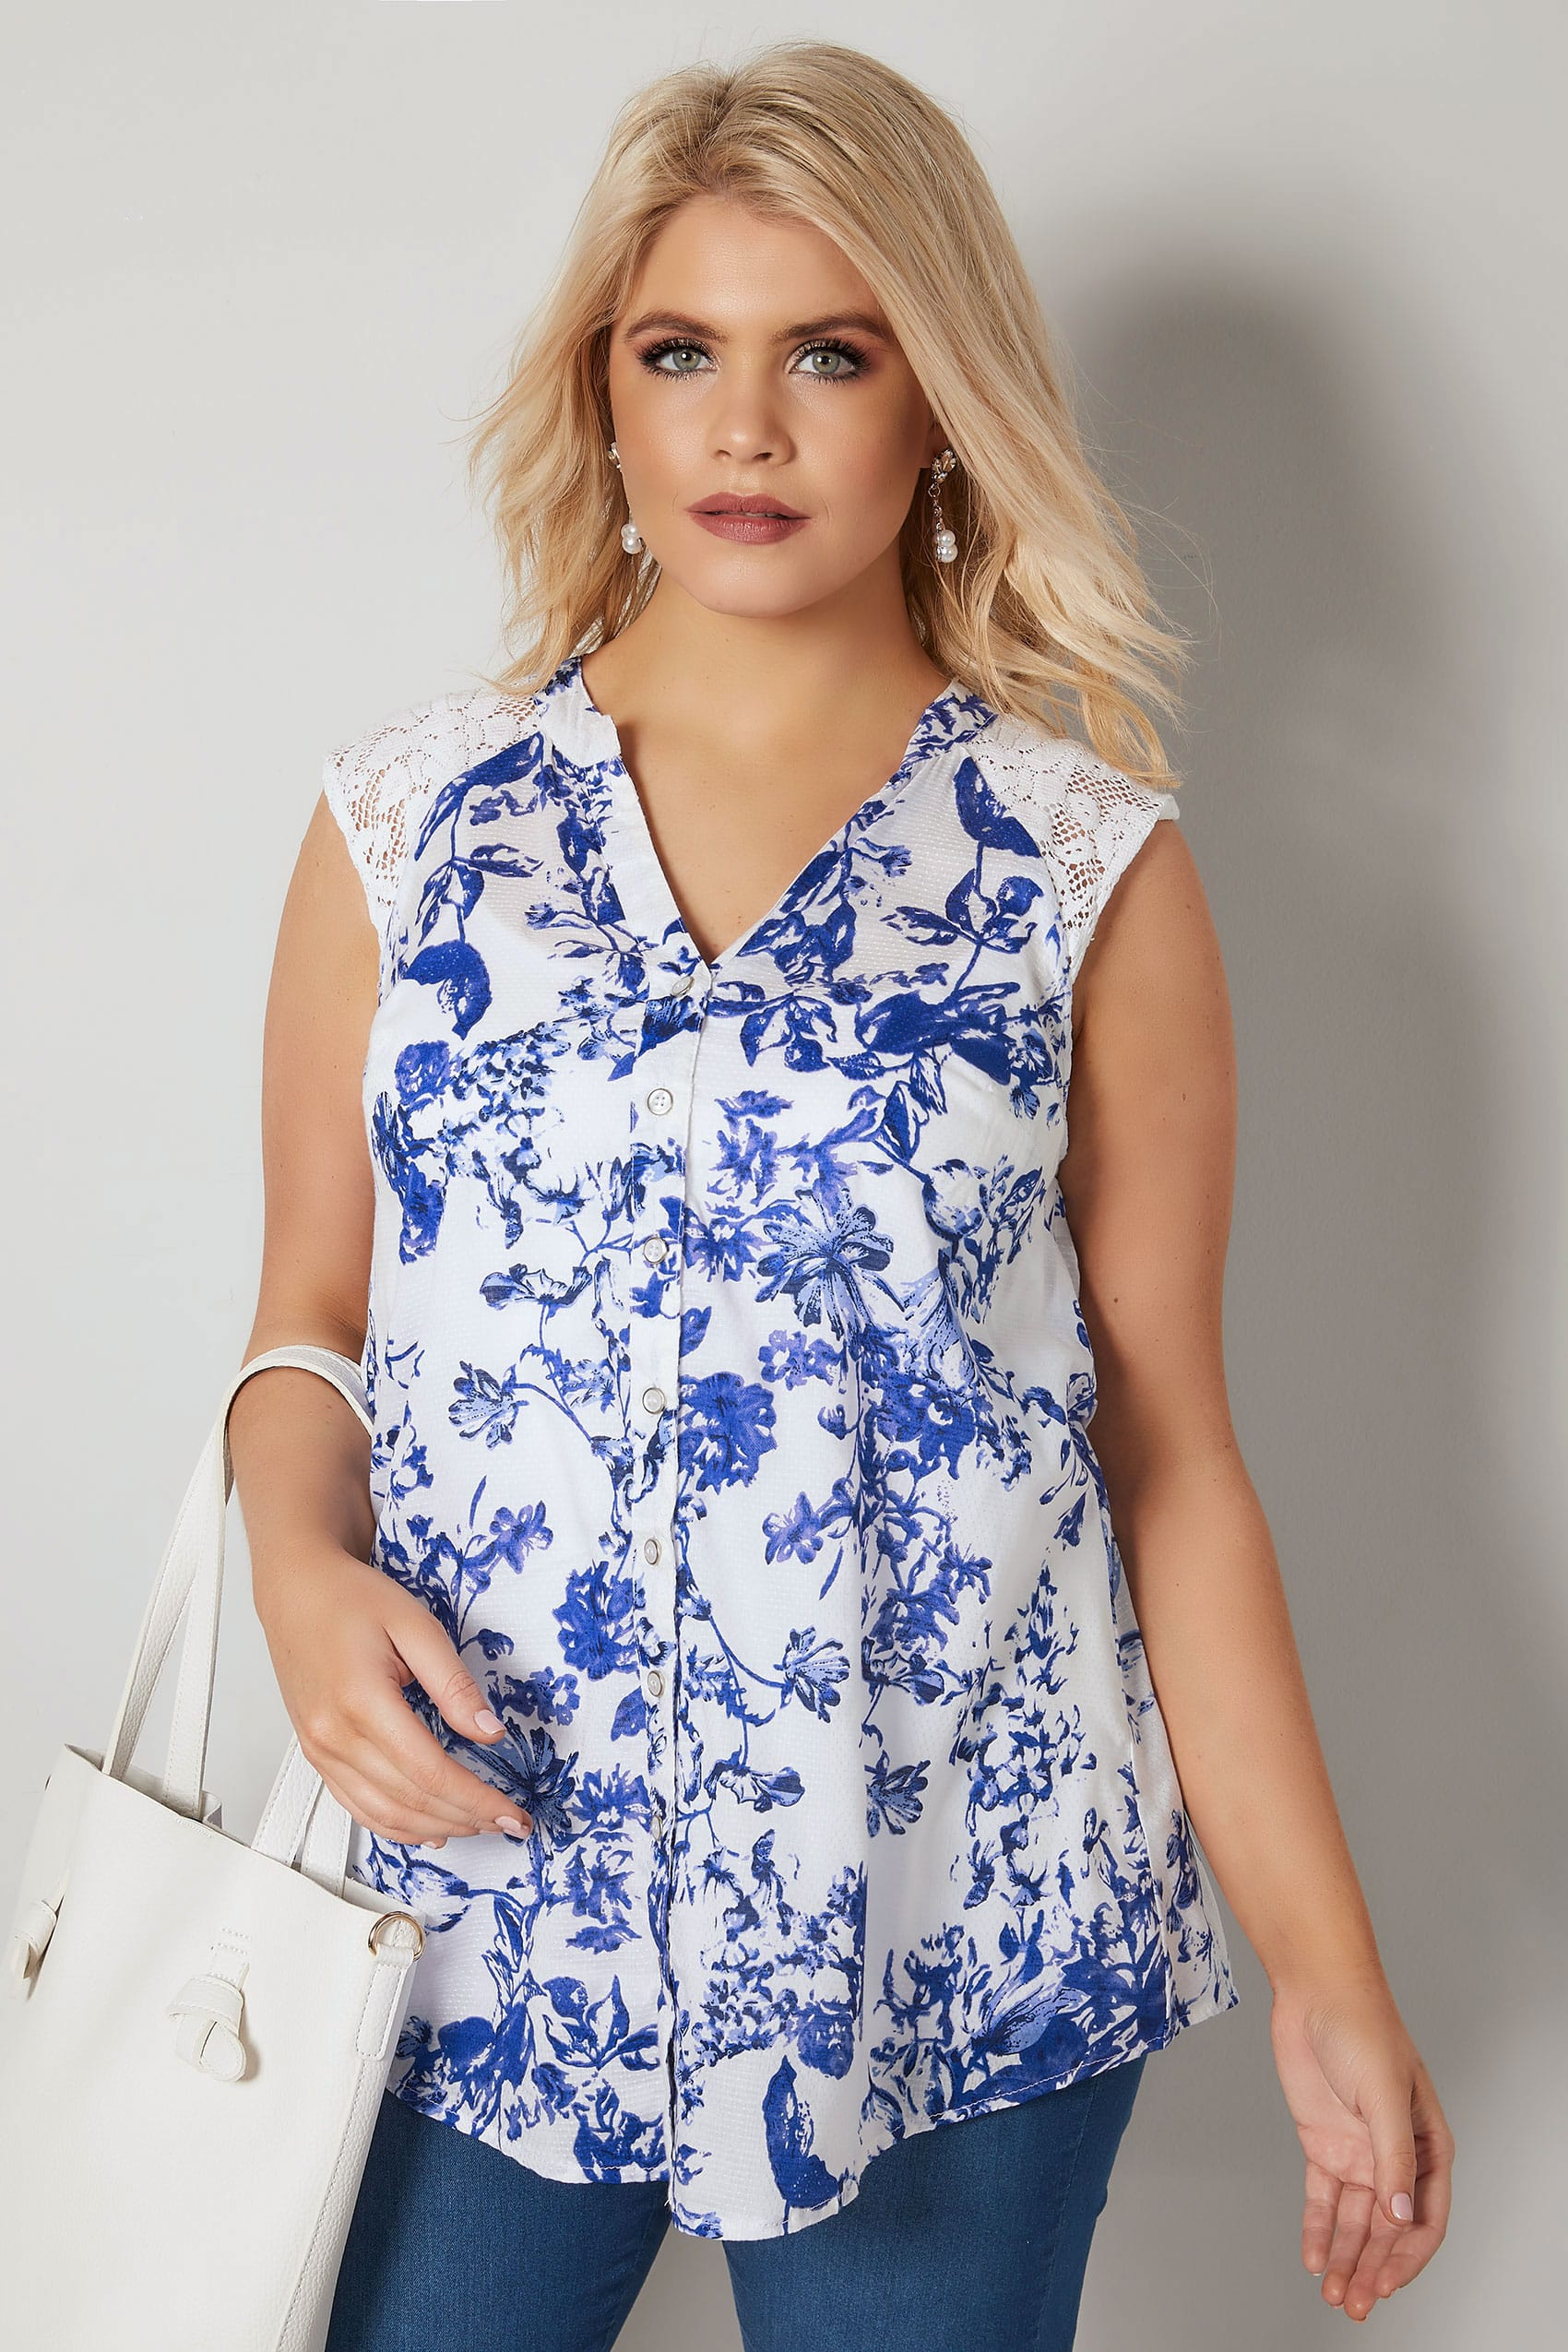 white  u0026 blue floral sleeveless shirt with crochet lace panels  plus size 16 to 36